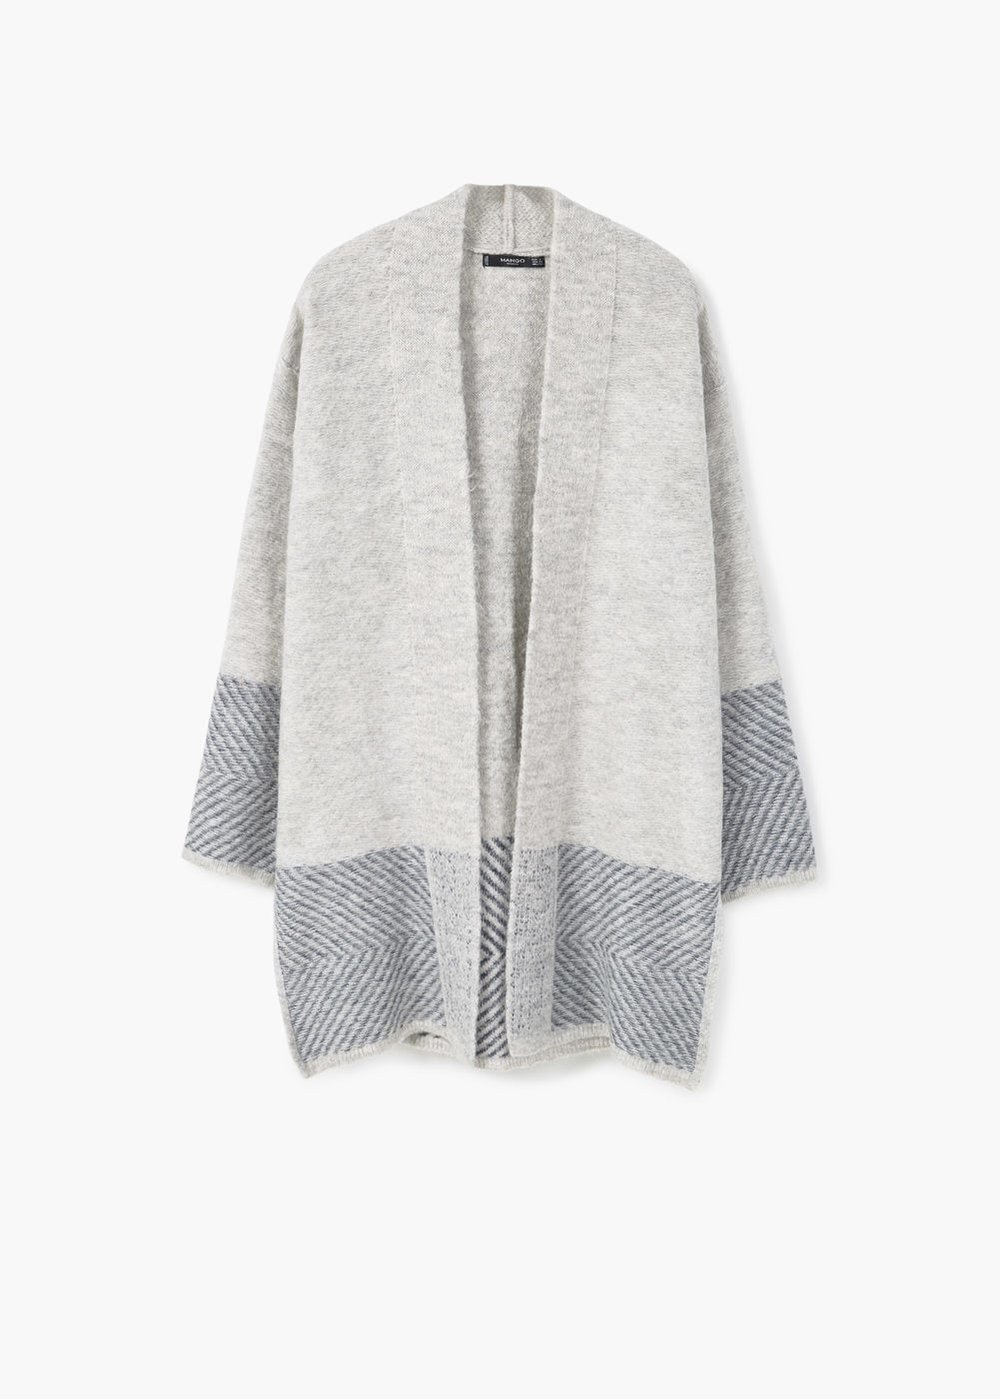 Mango Cotton Cardigan $59.99